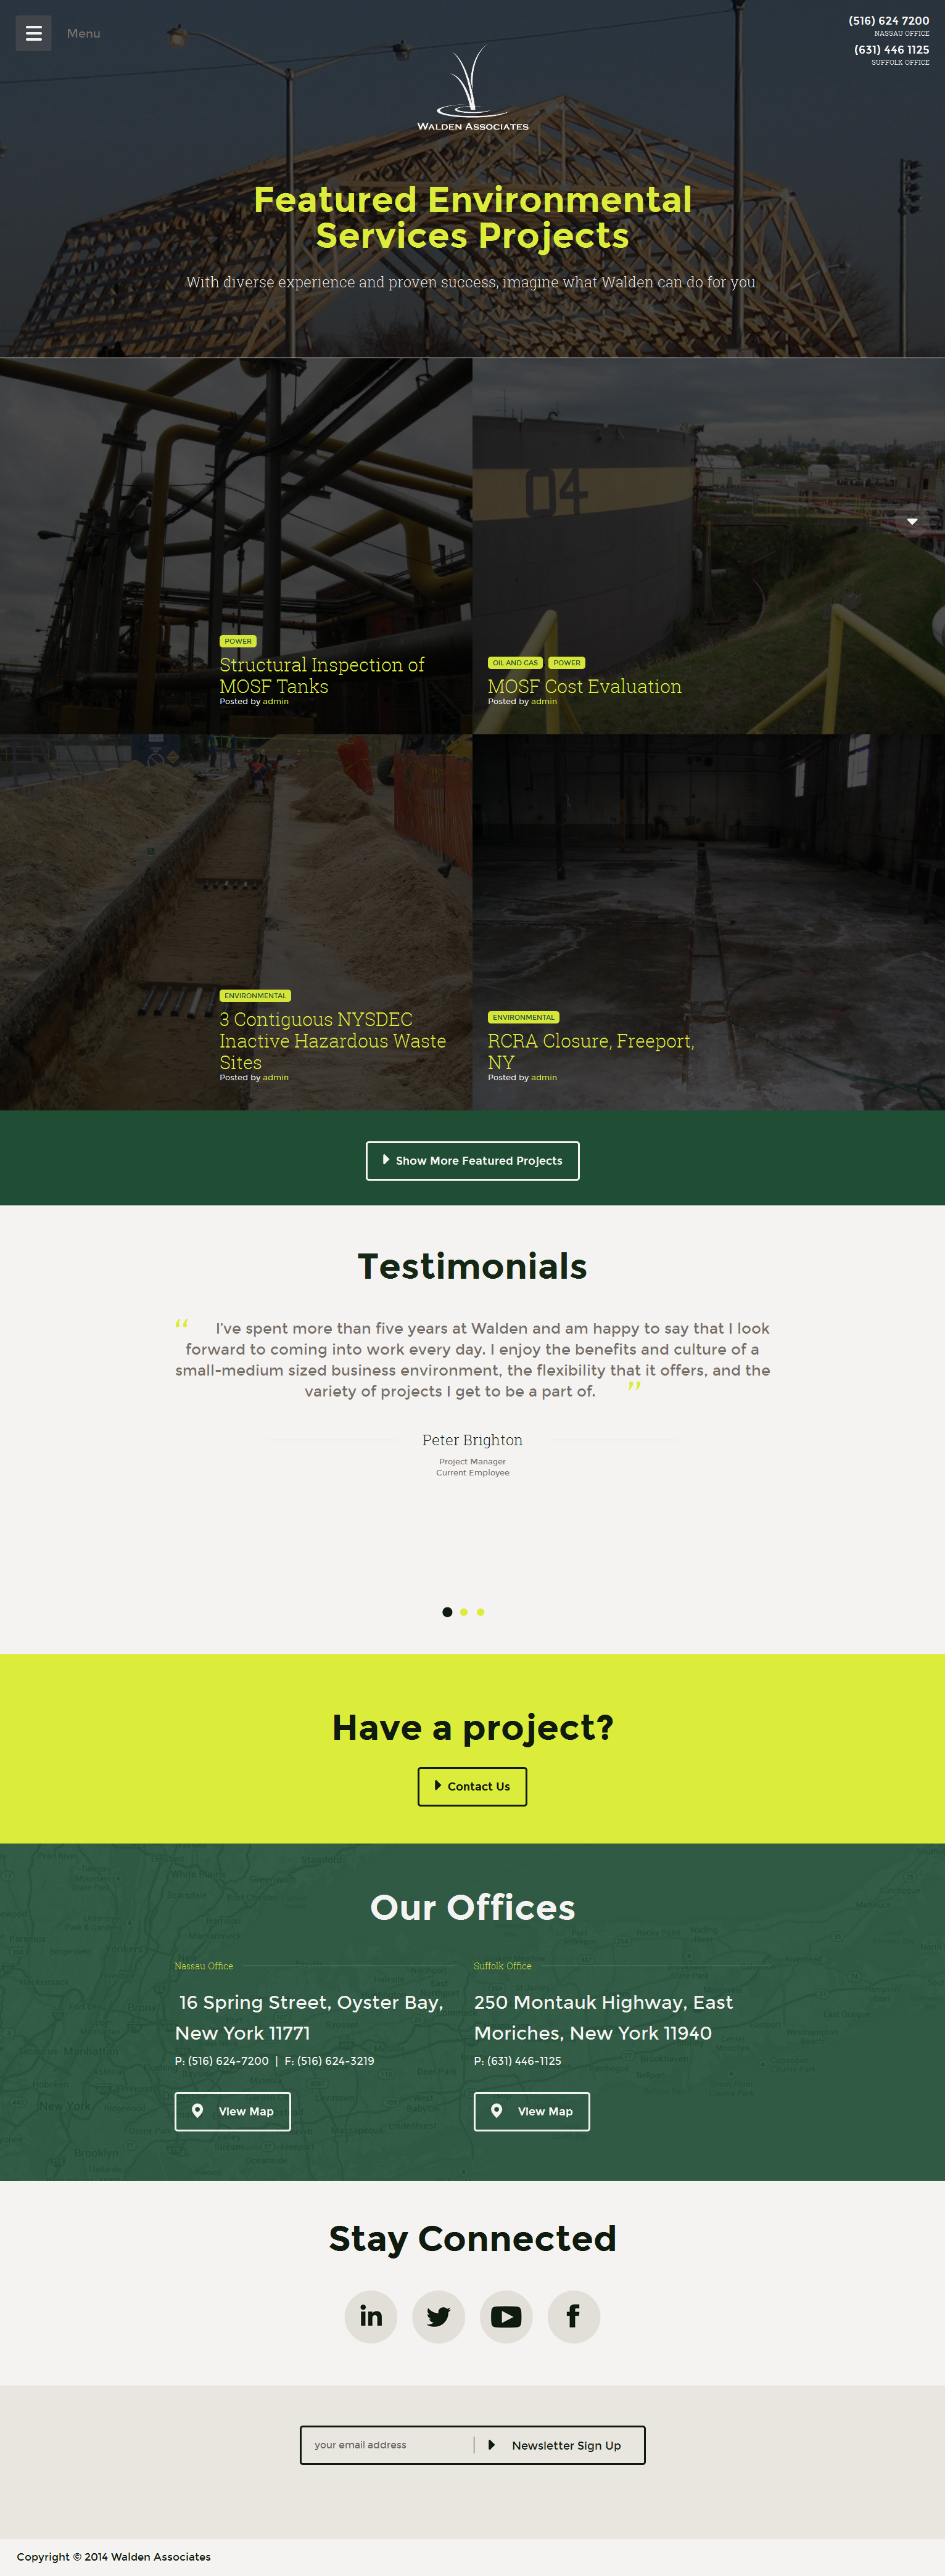 Another Handcrafted Website By Web Design Agency Www Isadoradesign Com Webdesign Interactive Websites Web Design Agency Web Design